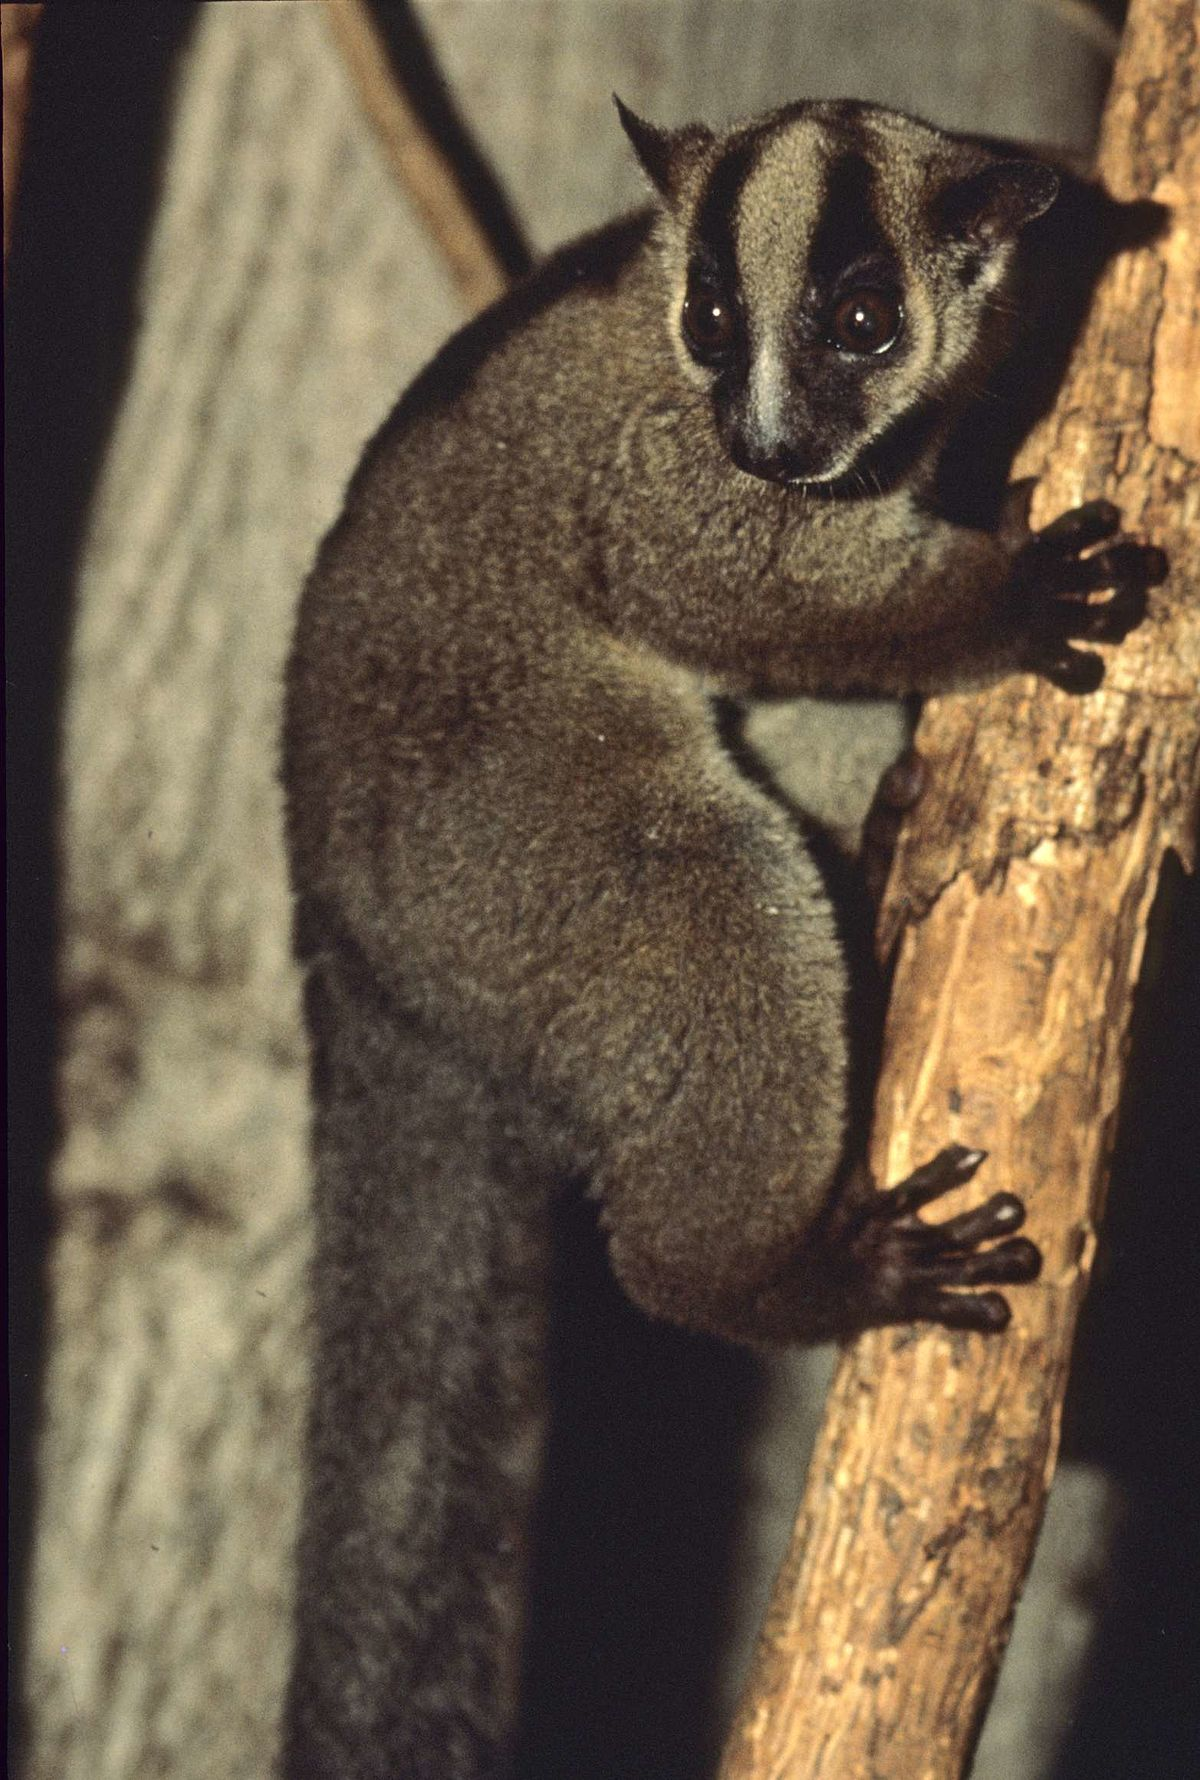 Purple And Green Fork-marked Lemur - Wikipedia